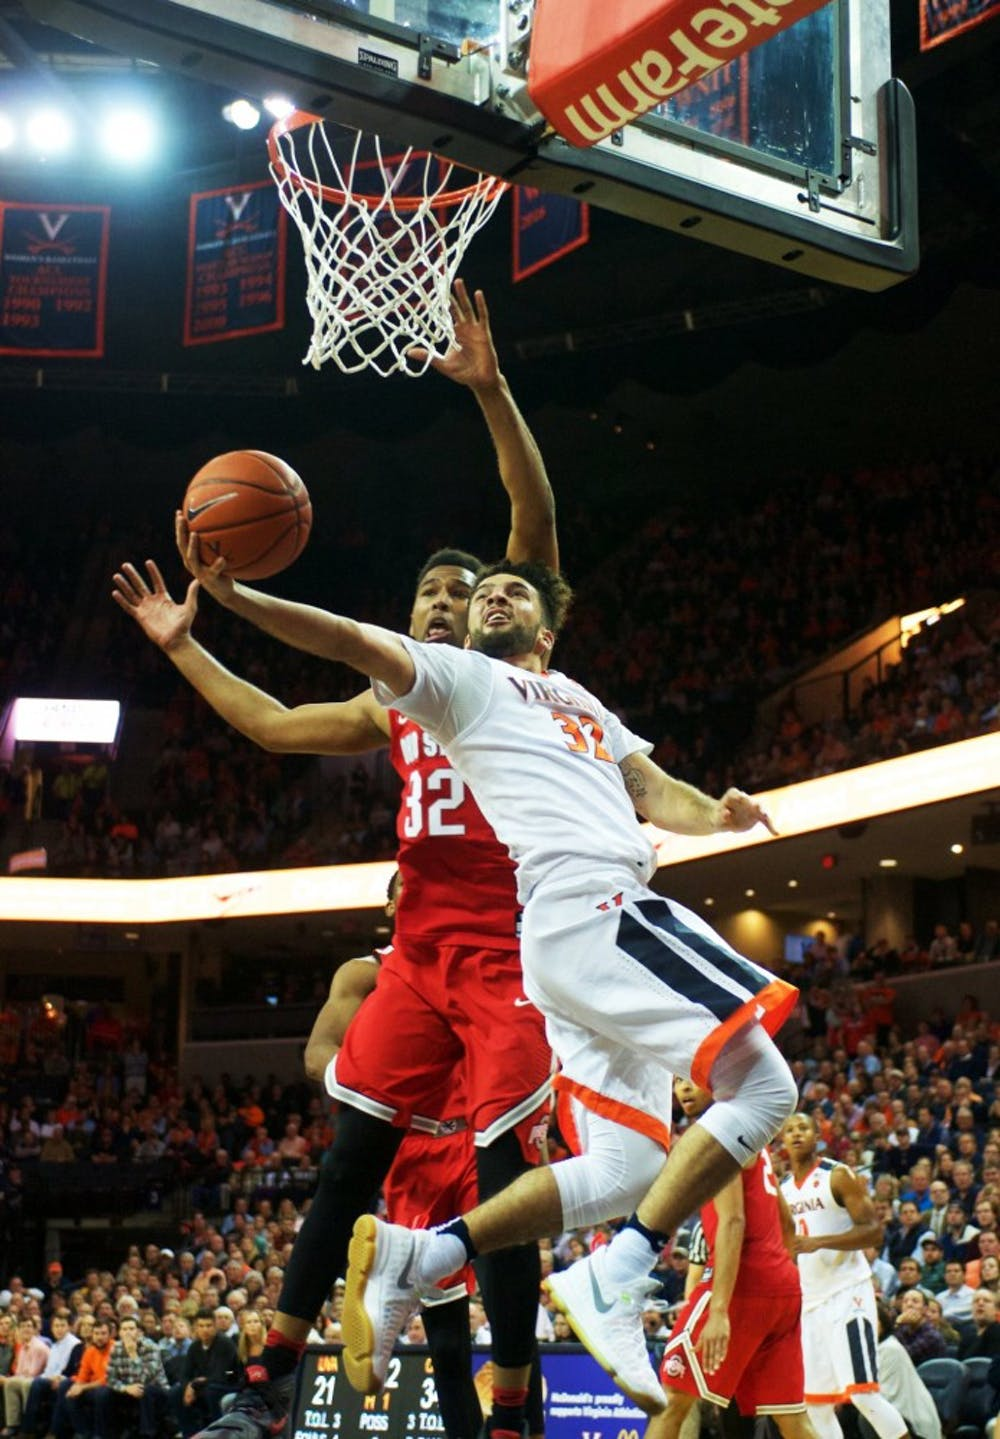 <p>Though Perrantes led the Cavaliers in scoring against Virginia Tech, his uncharacteristic free throw woes hurt the team down the stretch.</p>